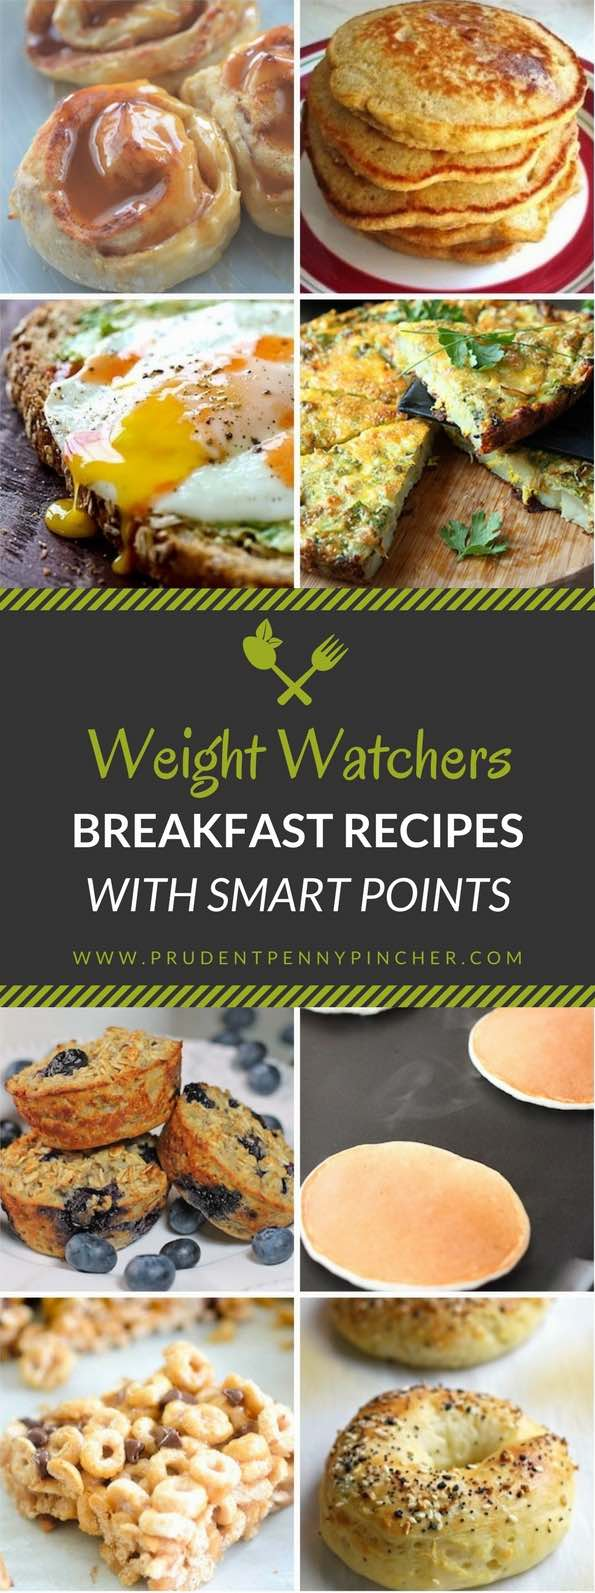 Weight Watcher Breakfast Recipes With Smart Points